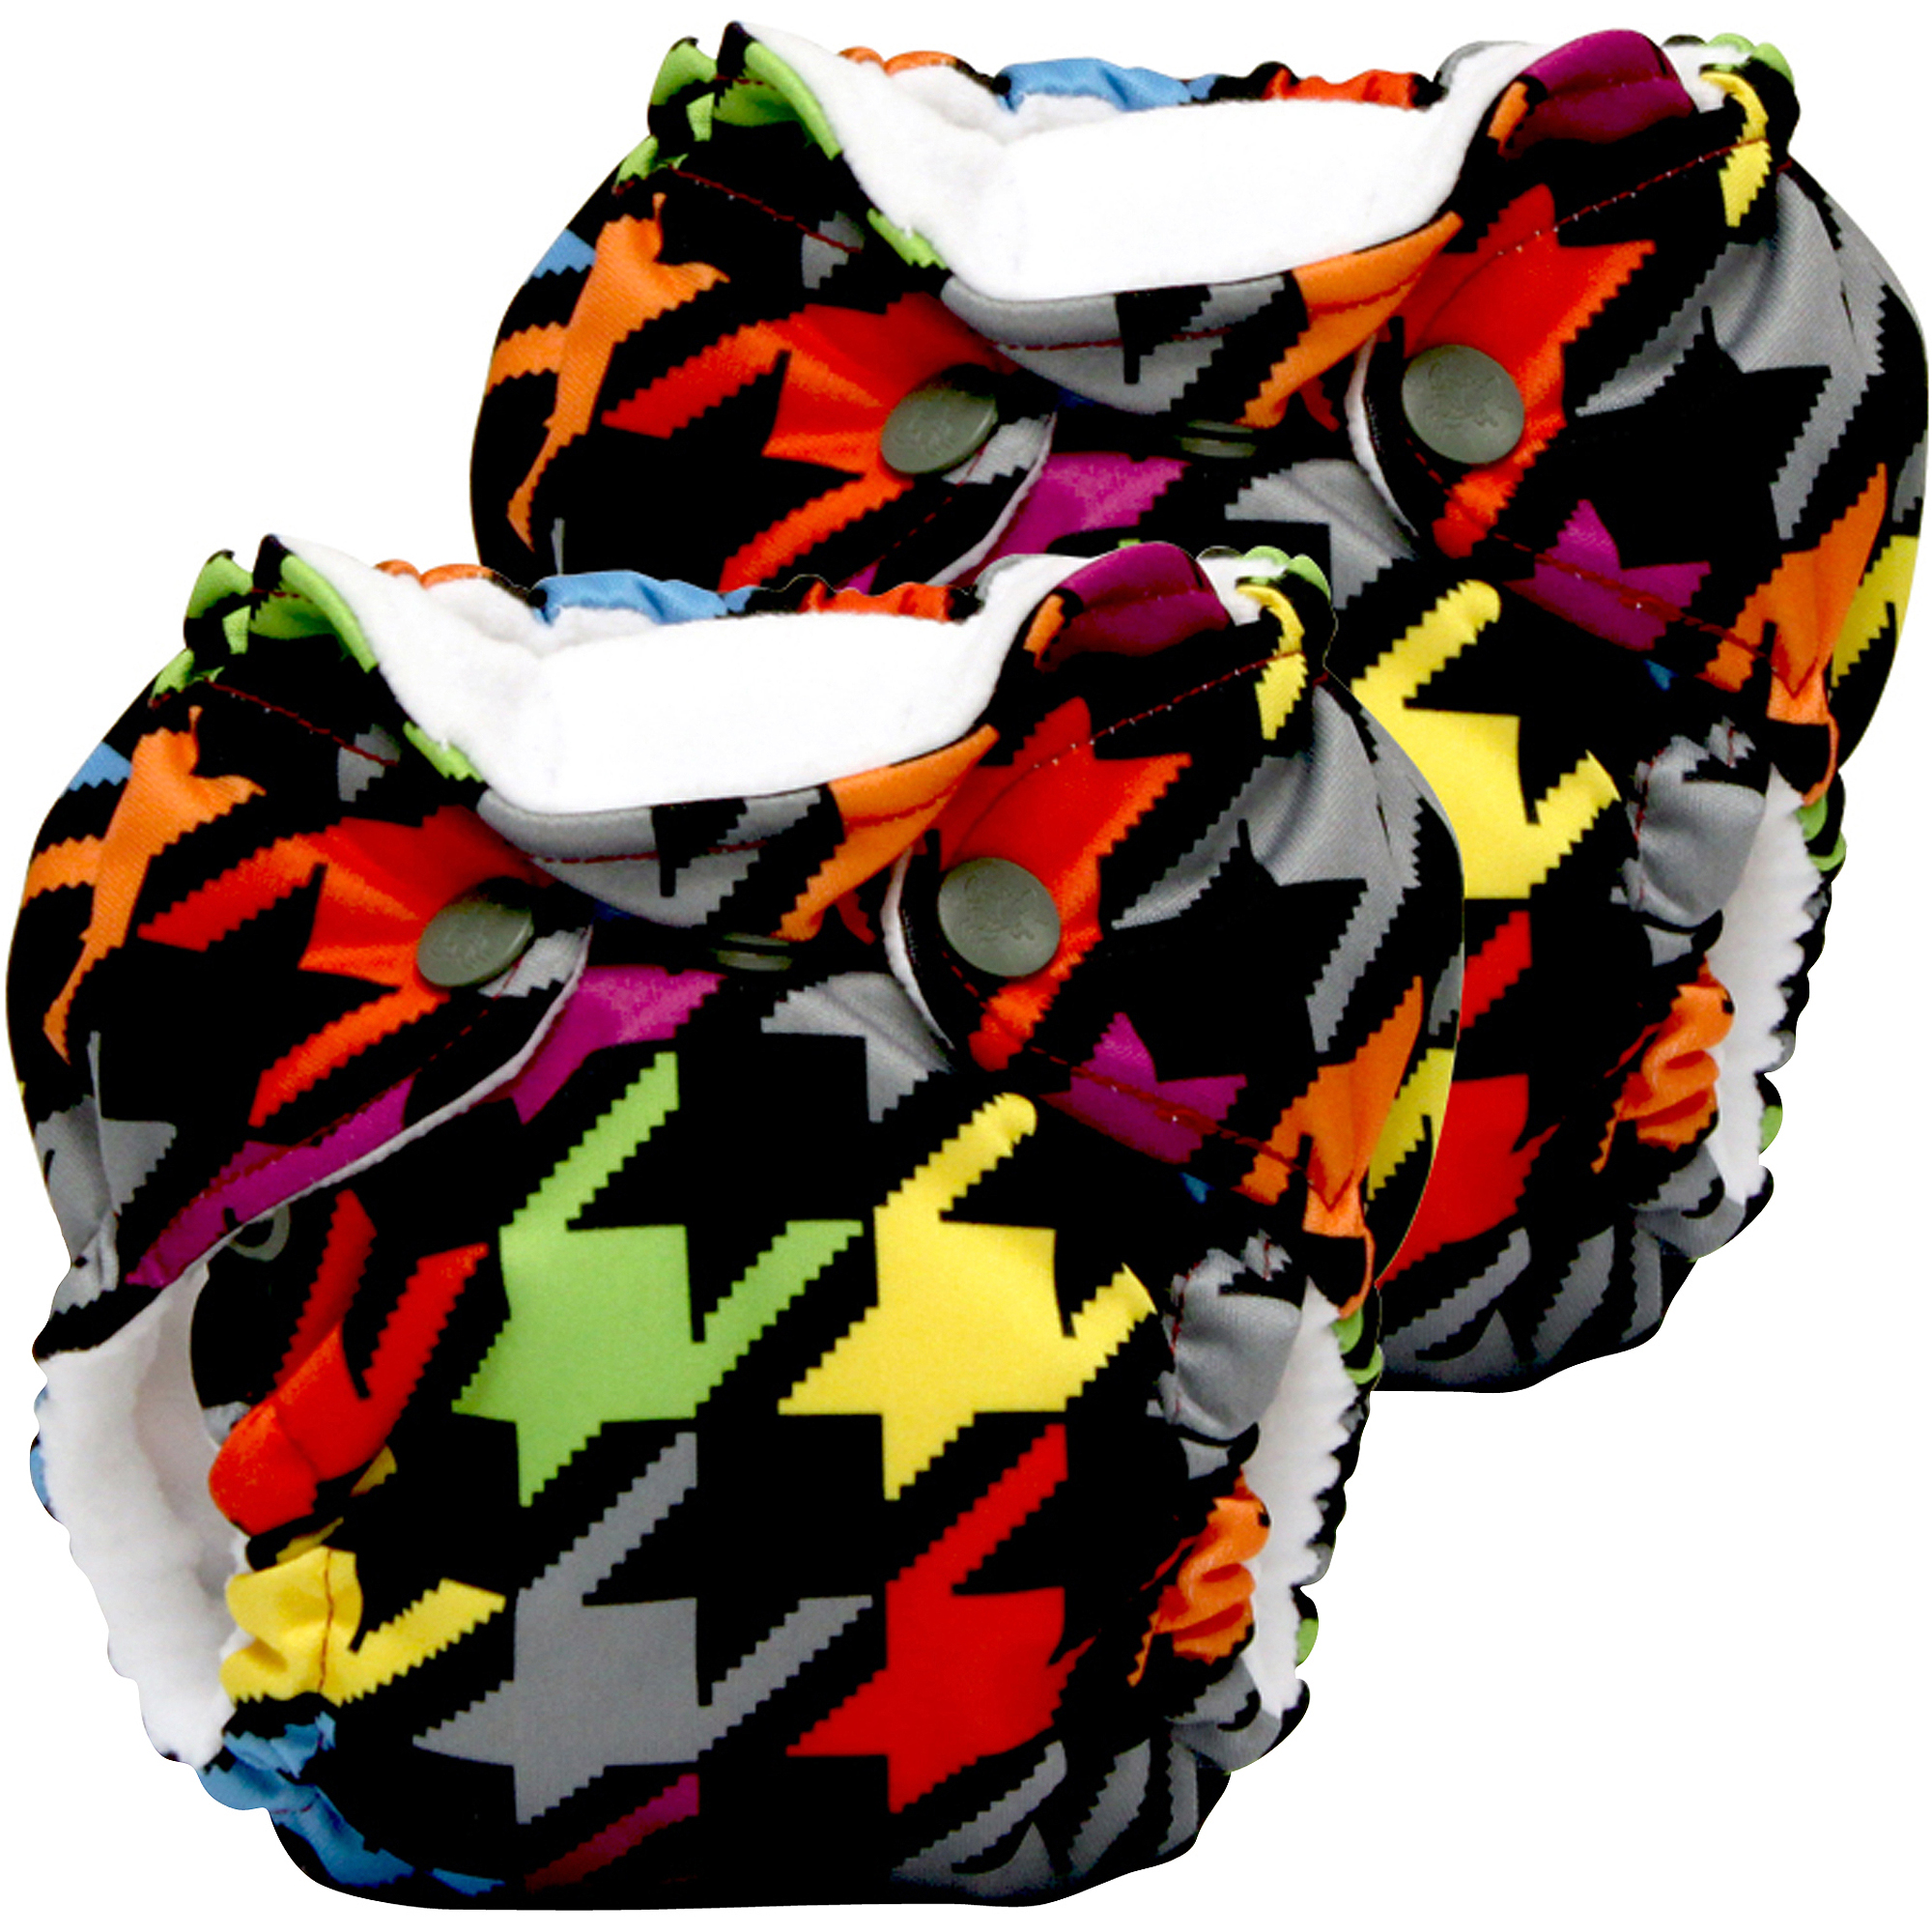 Kanga Care Lil Joey All in One Newborn Cloth Diaper, Invader, 2 count